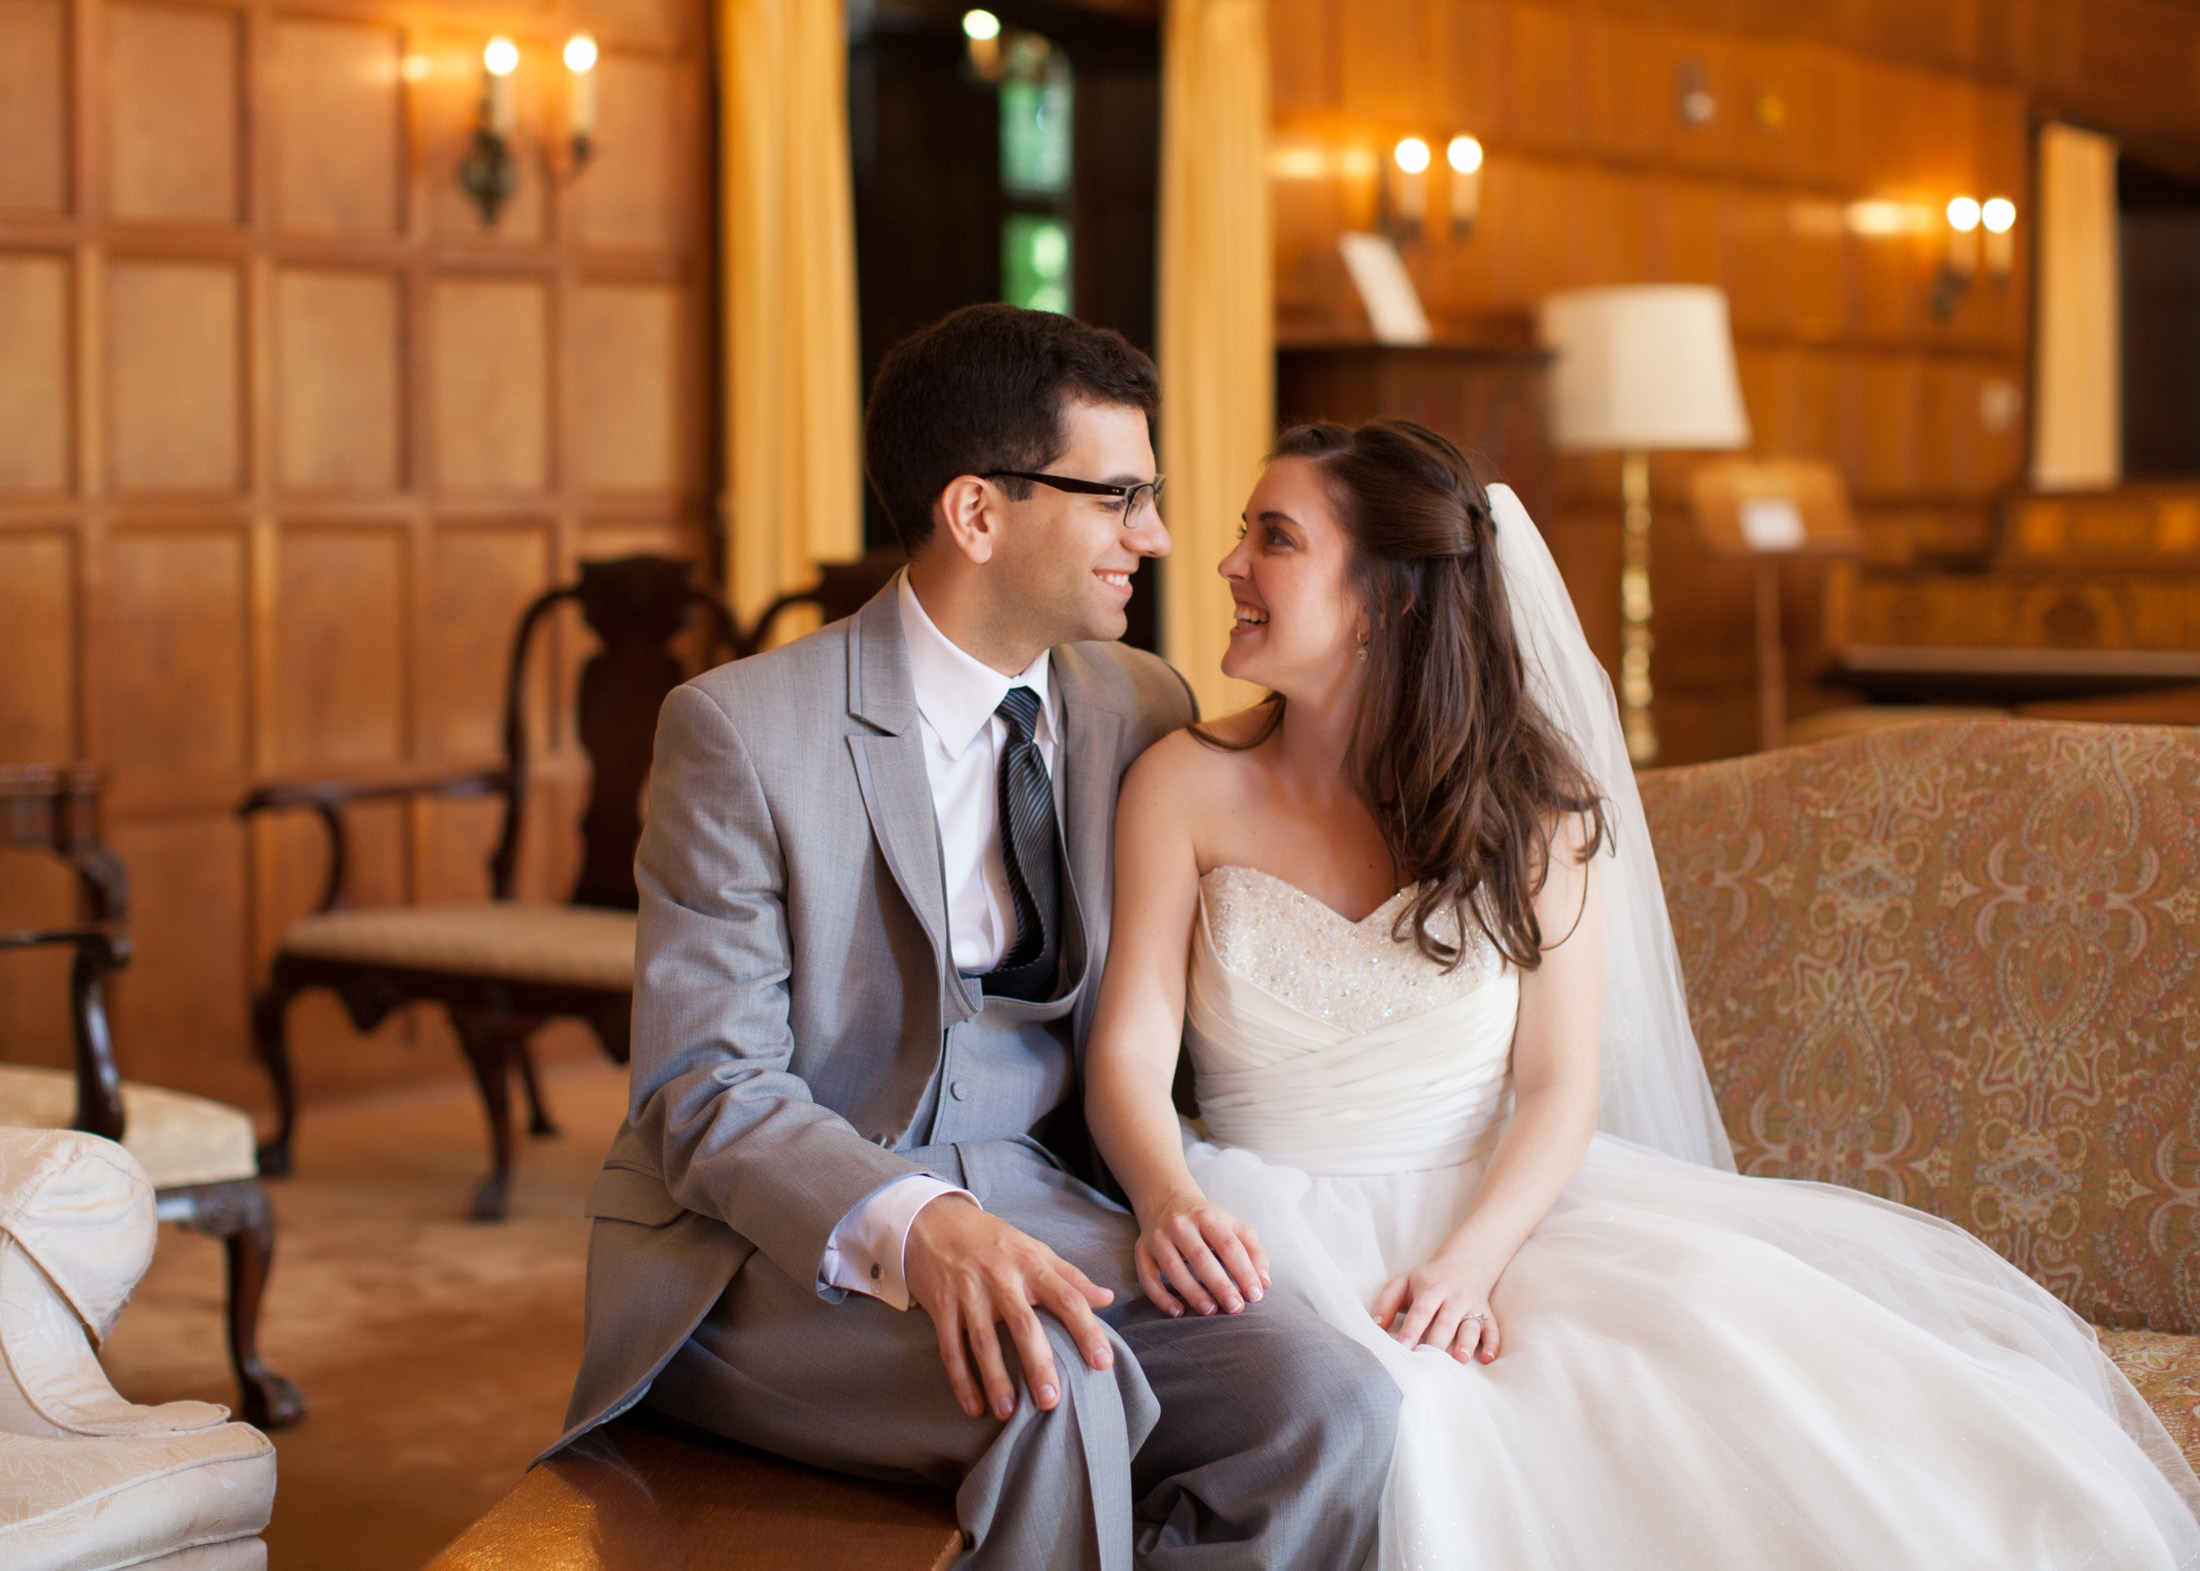 UofM_weddings_hull_melanie_reyes_038